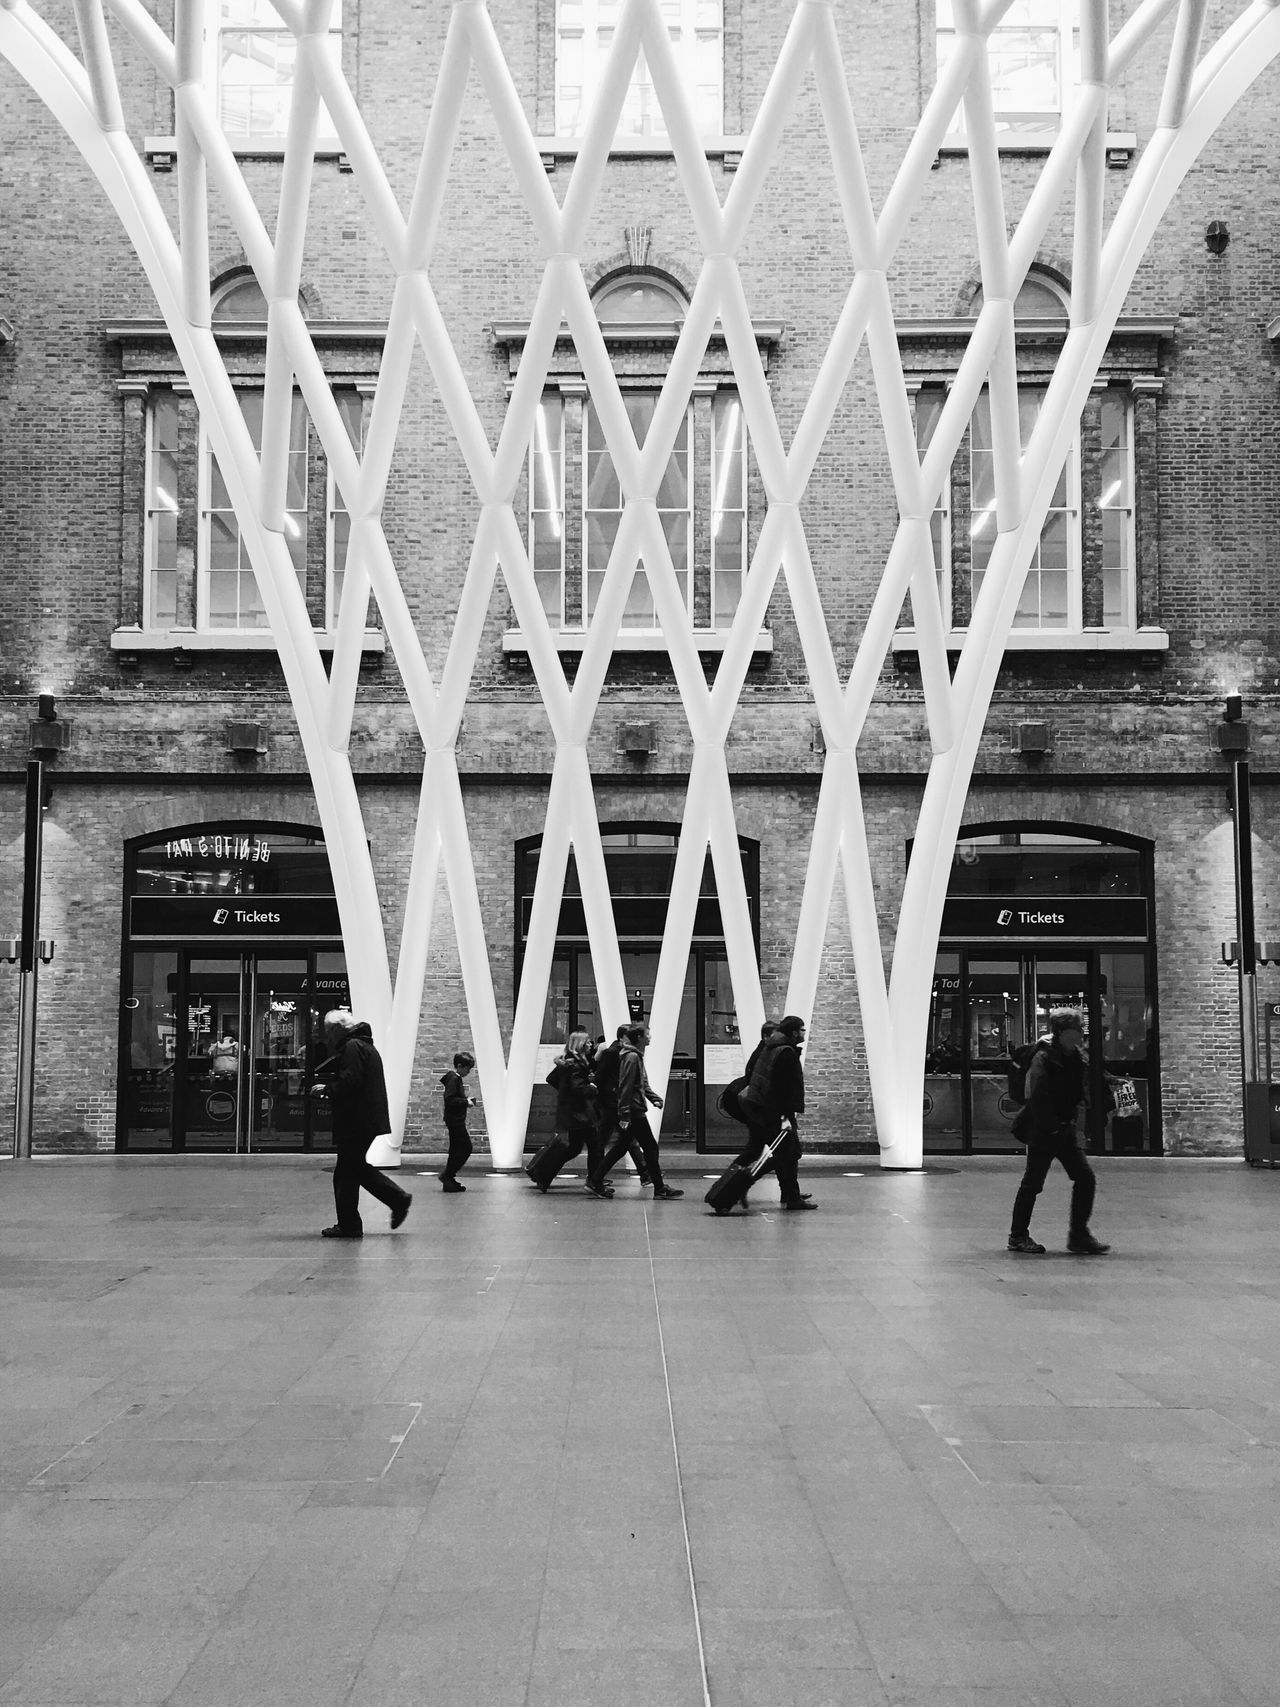 Lines Check This Out Taking Photos Vscocam VSCO IPhoneography Iphonesia Iphoneonly Iphone6splus Streetphoto_bw Streetphotography Harry Potter ❤ Harry Potter ⚡ Harry Potter